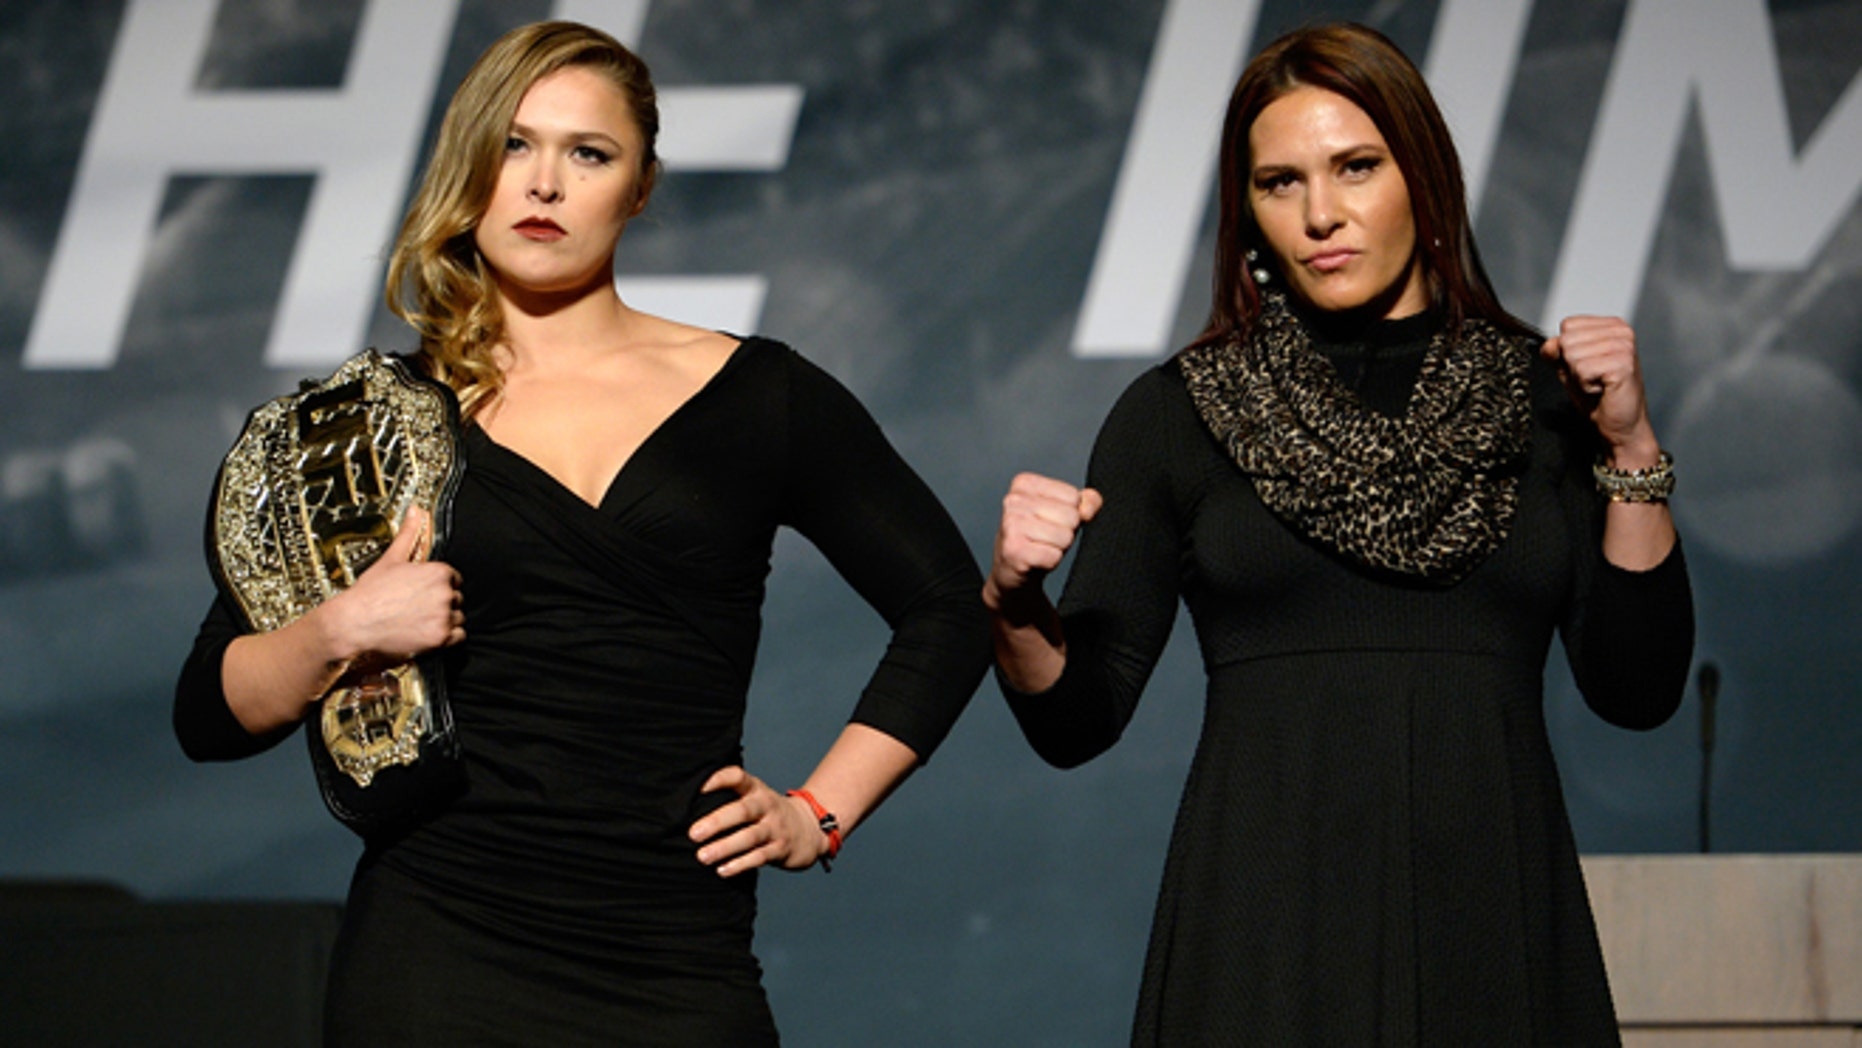 LAS VEGAS, NEVADA - NOVEMBER 17:  UFC women's bantamweight champion Ronda Rousey (L) and challenger Cat Zingano pose for the media during the UFC Time Is Now press conference at The Smith Center for the Performing Arts on November 17, 2014 in Las Vegas, Nevada. (Photo by Jeff Bottari/Zuffa LLC/Zuffa LLC via Getty Images)